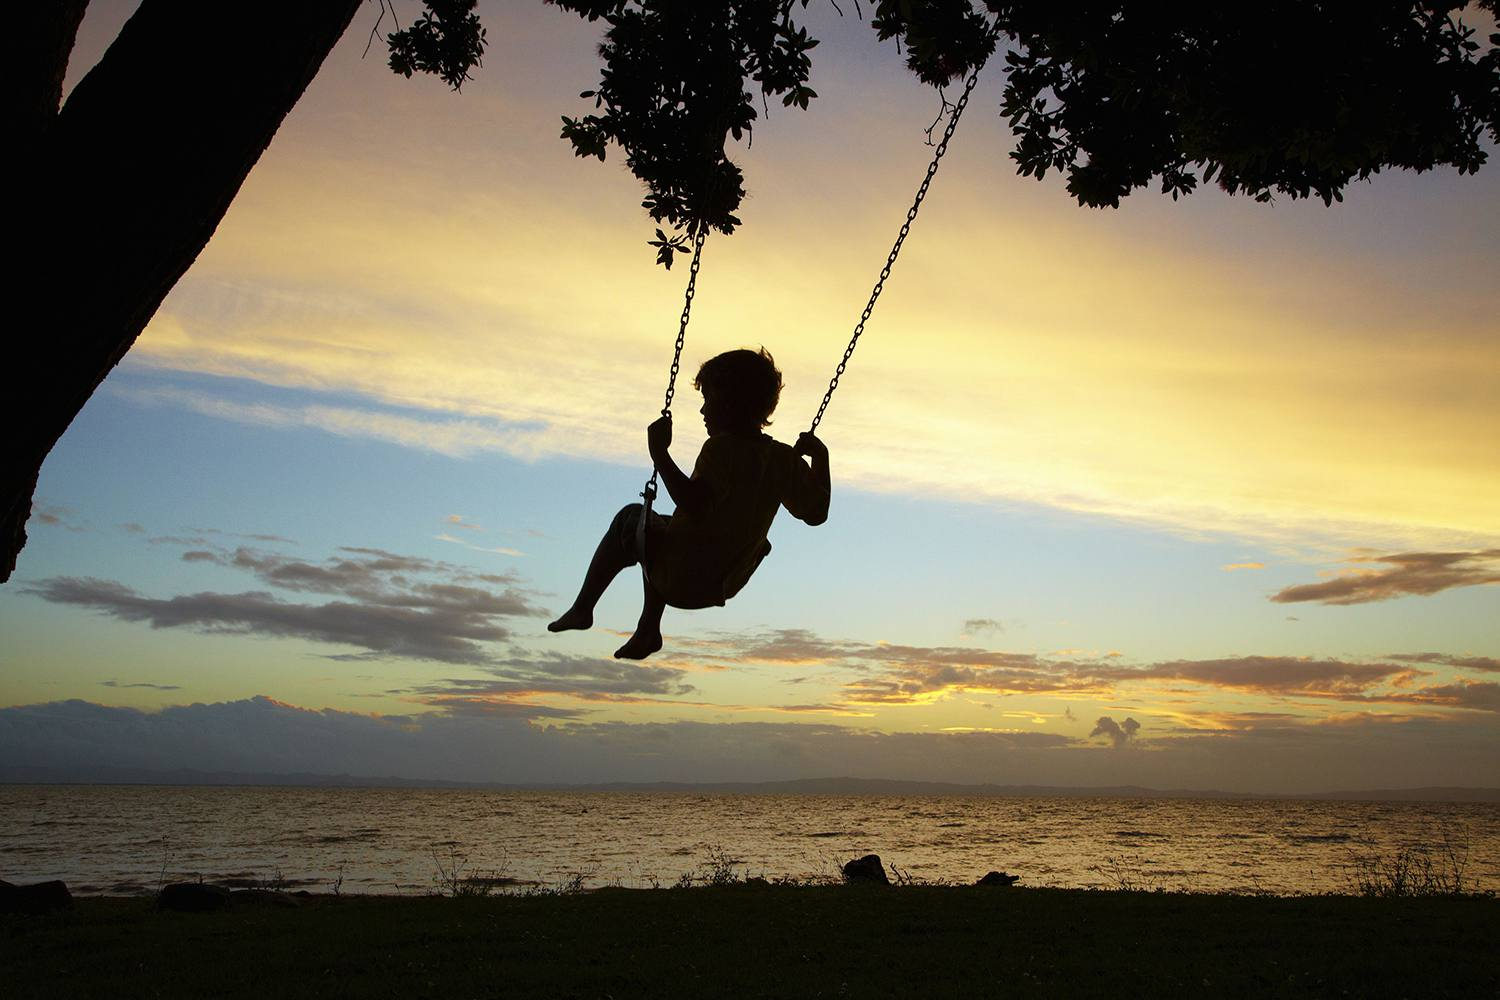 Silhouette of Child on Swing at Sunset